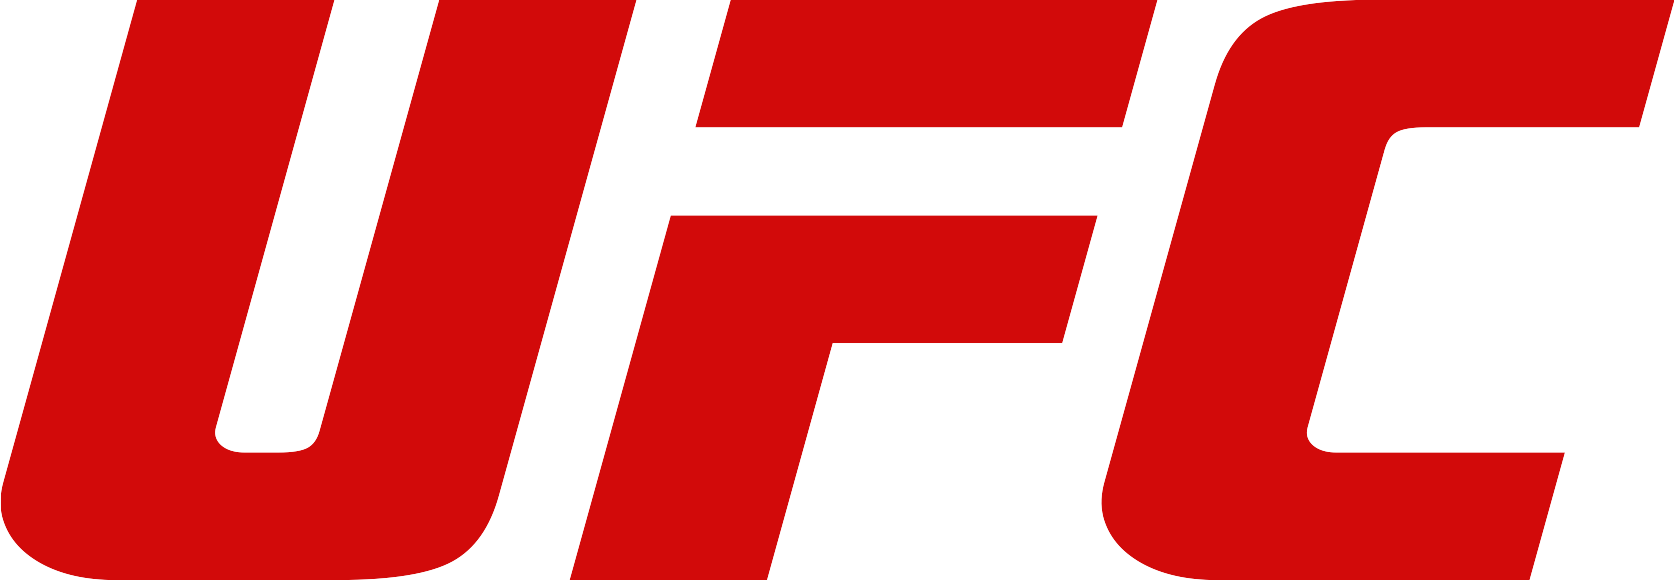 ufc-logo-new-red